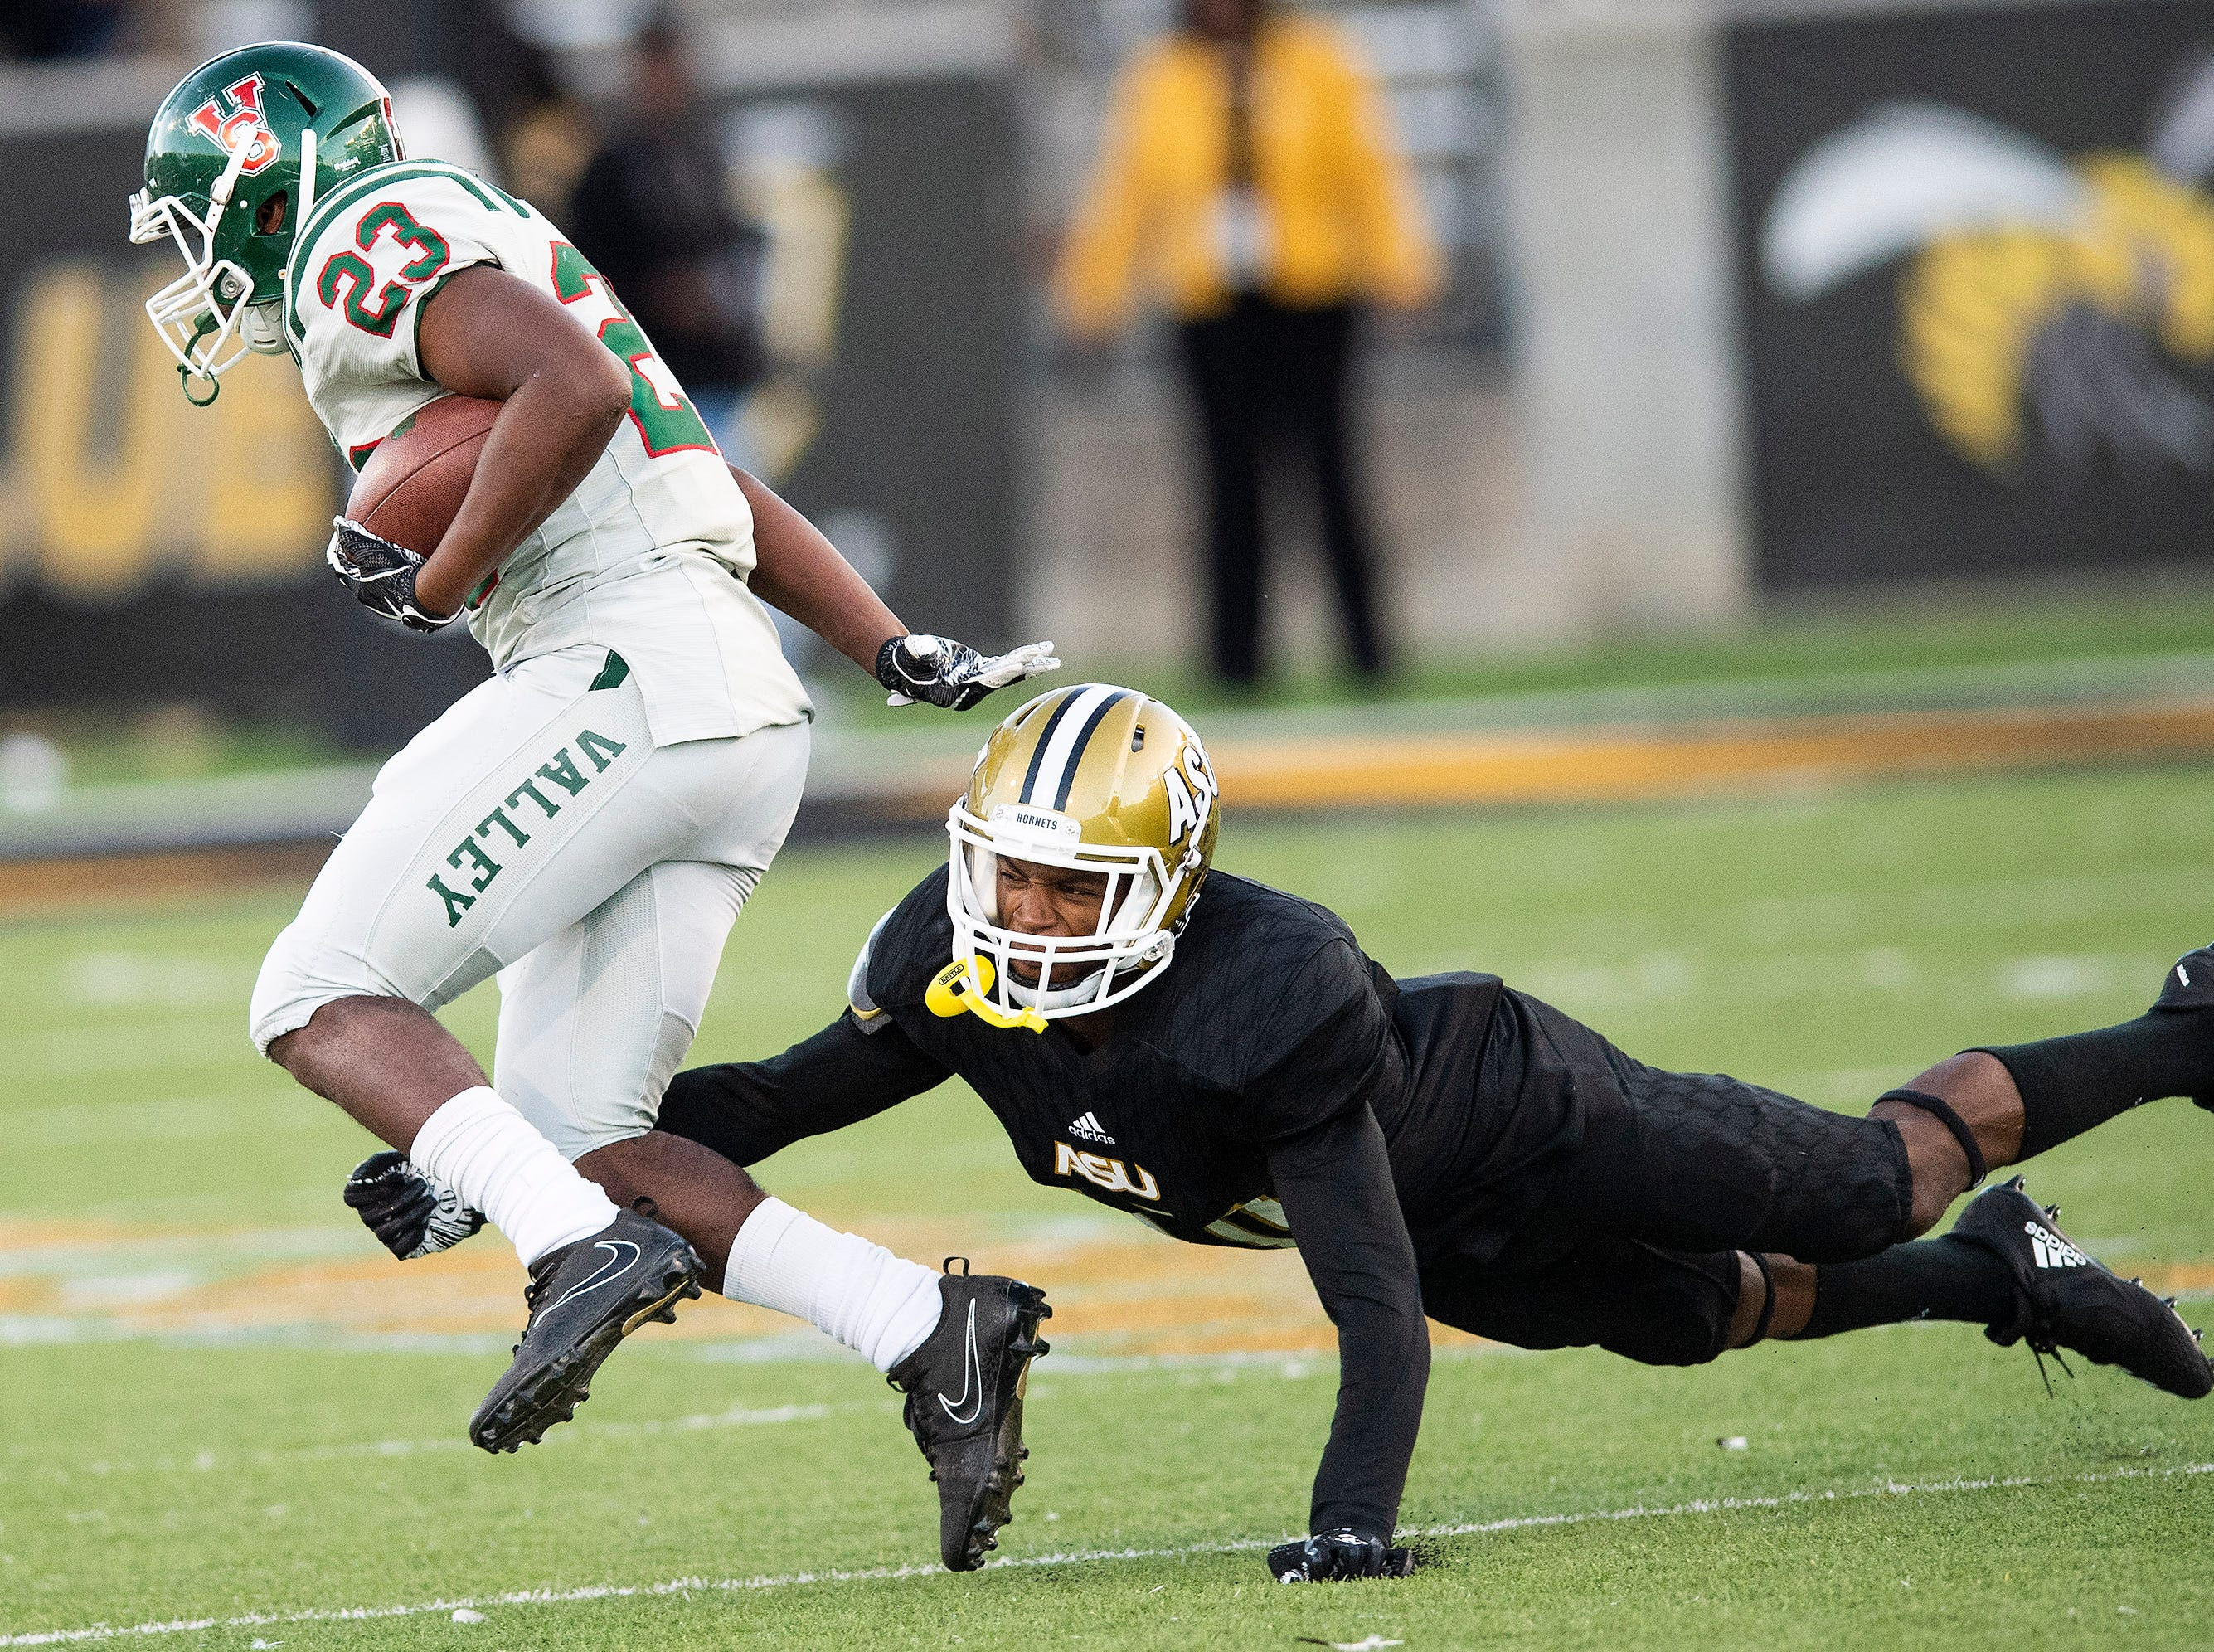 Alabama State University defensive back Keenan Isaac (10)  tries to trip up Mississippi Valley State running back John Derrick Smith (23) the Turkey Day Classic at Hornet Stadium on the ASU campus in Montgomery, Ala., on Thanksgiving Day, Thursday November 22, 2018.